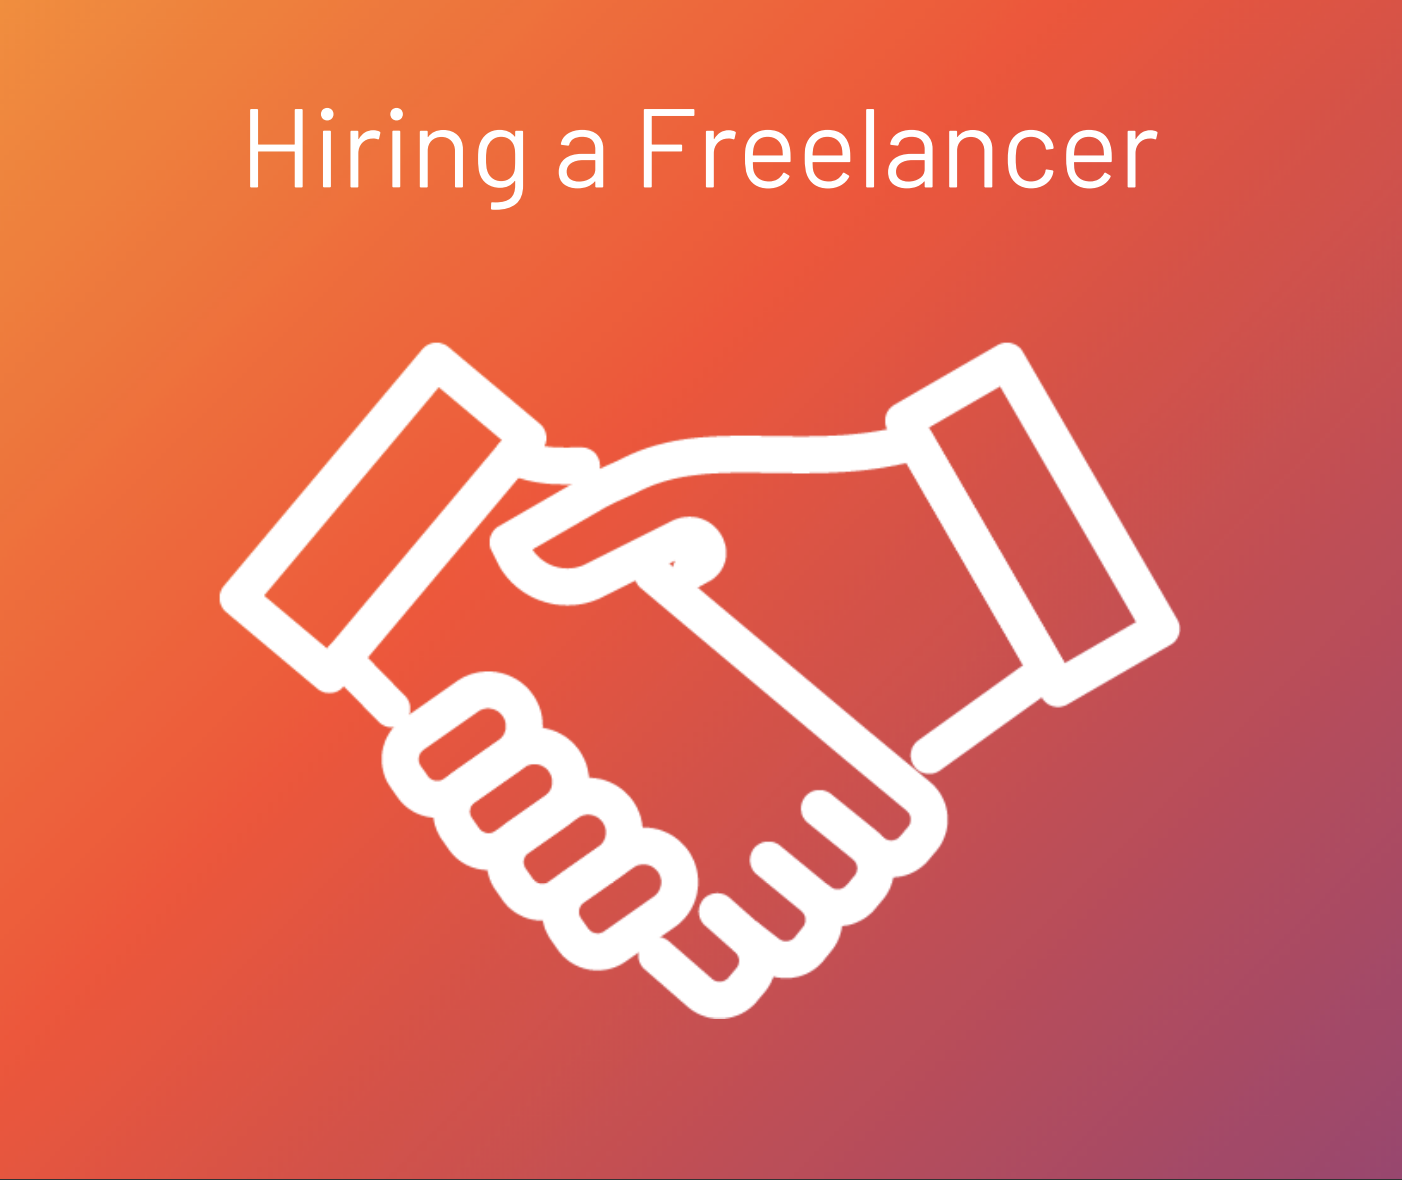 Hiring a Freelancer